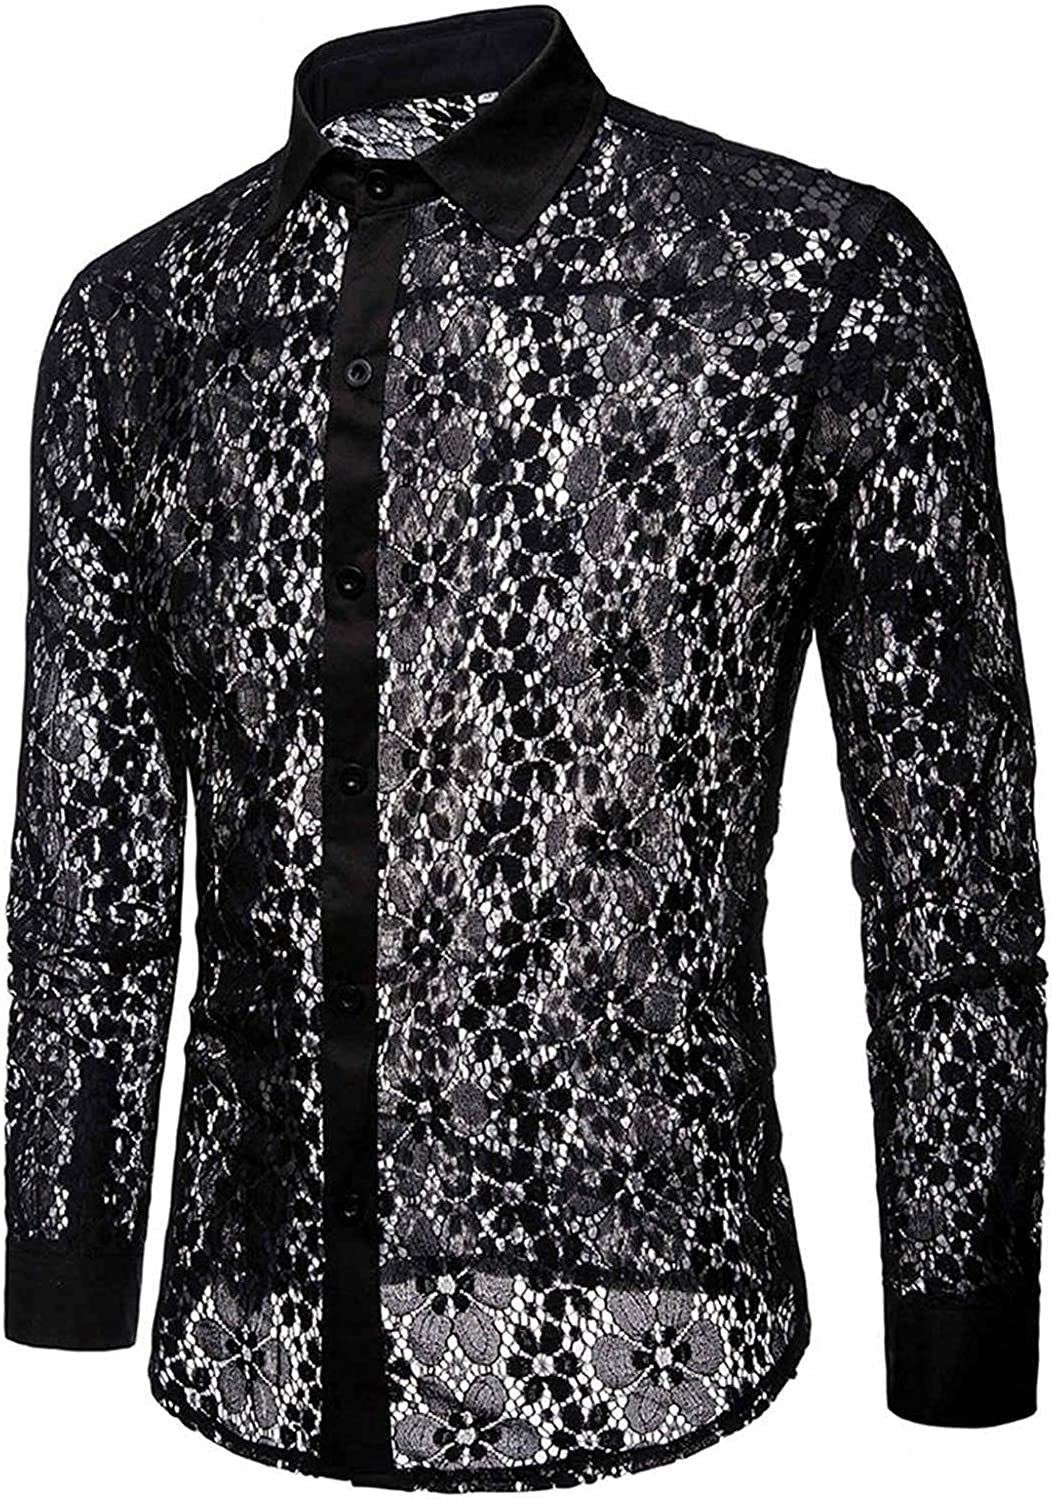 Mens Mesh Shirts Long Sleeve See Through Flower Button Down Sweatshirts Style Fishnet Hollow Lace